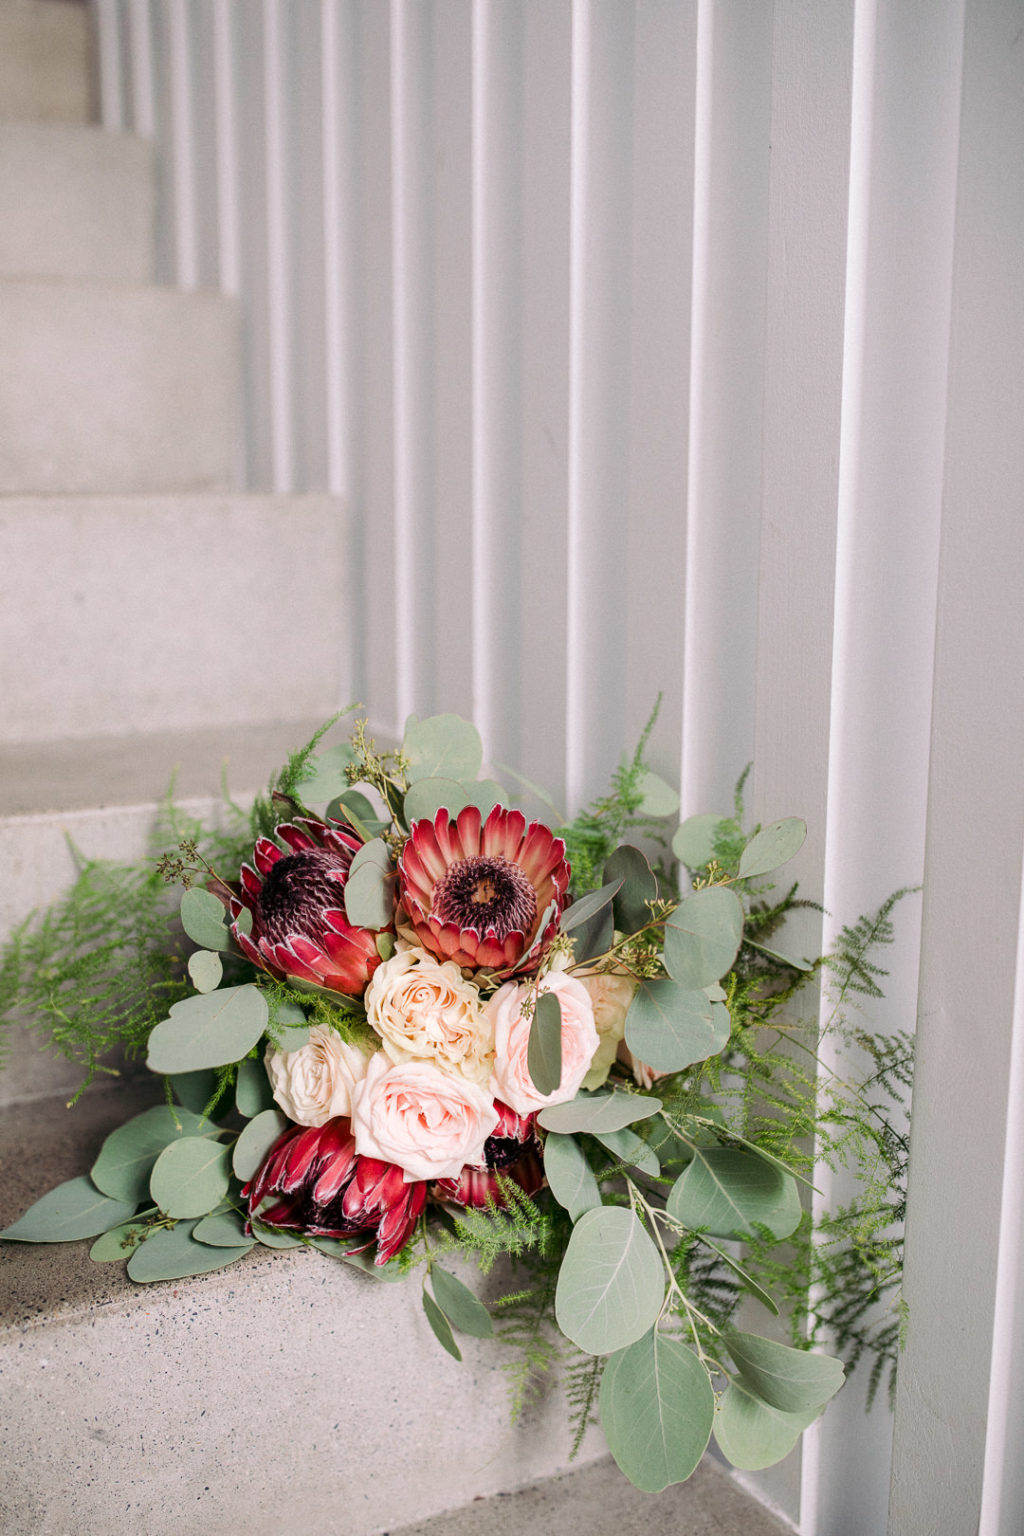 The wedding bouquet was done with blush roses, proteas and greenery